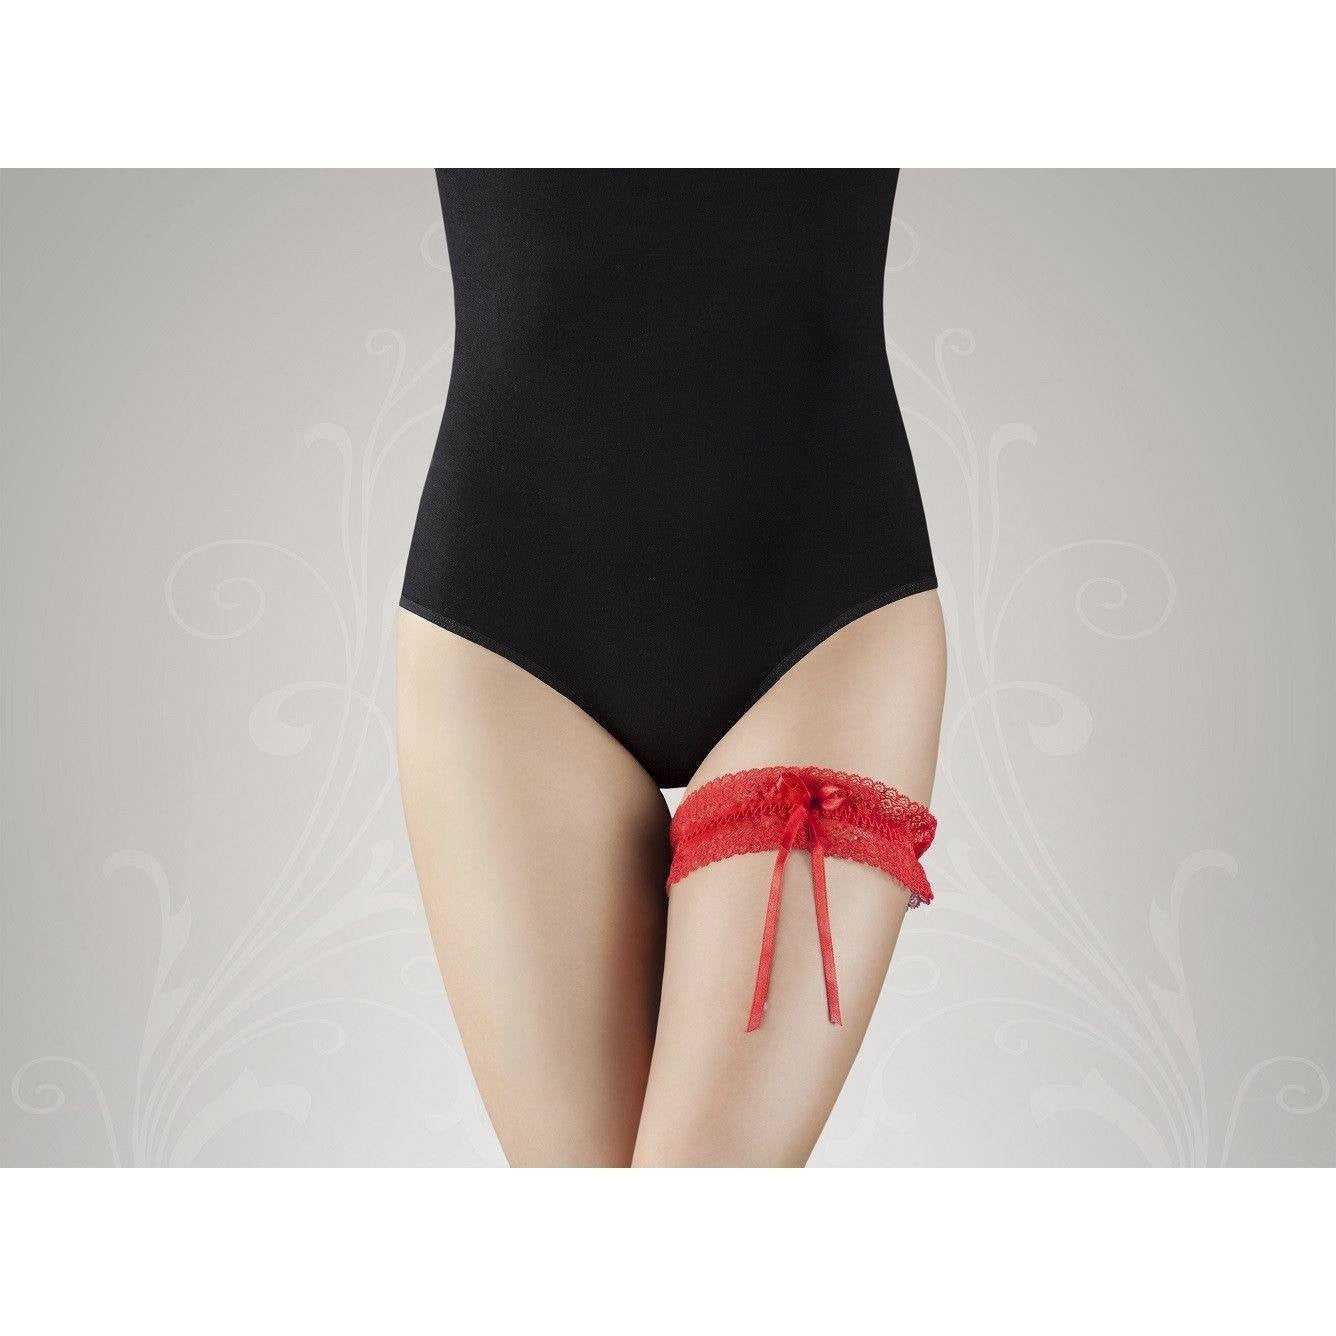 Red lace leg garter G-001 for <span class=money>€4.95 EUR</span> at Flirtywomen